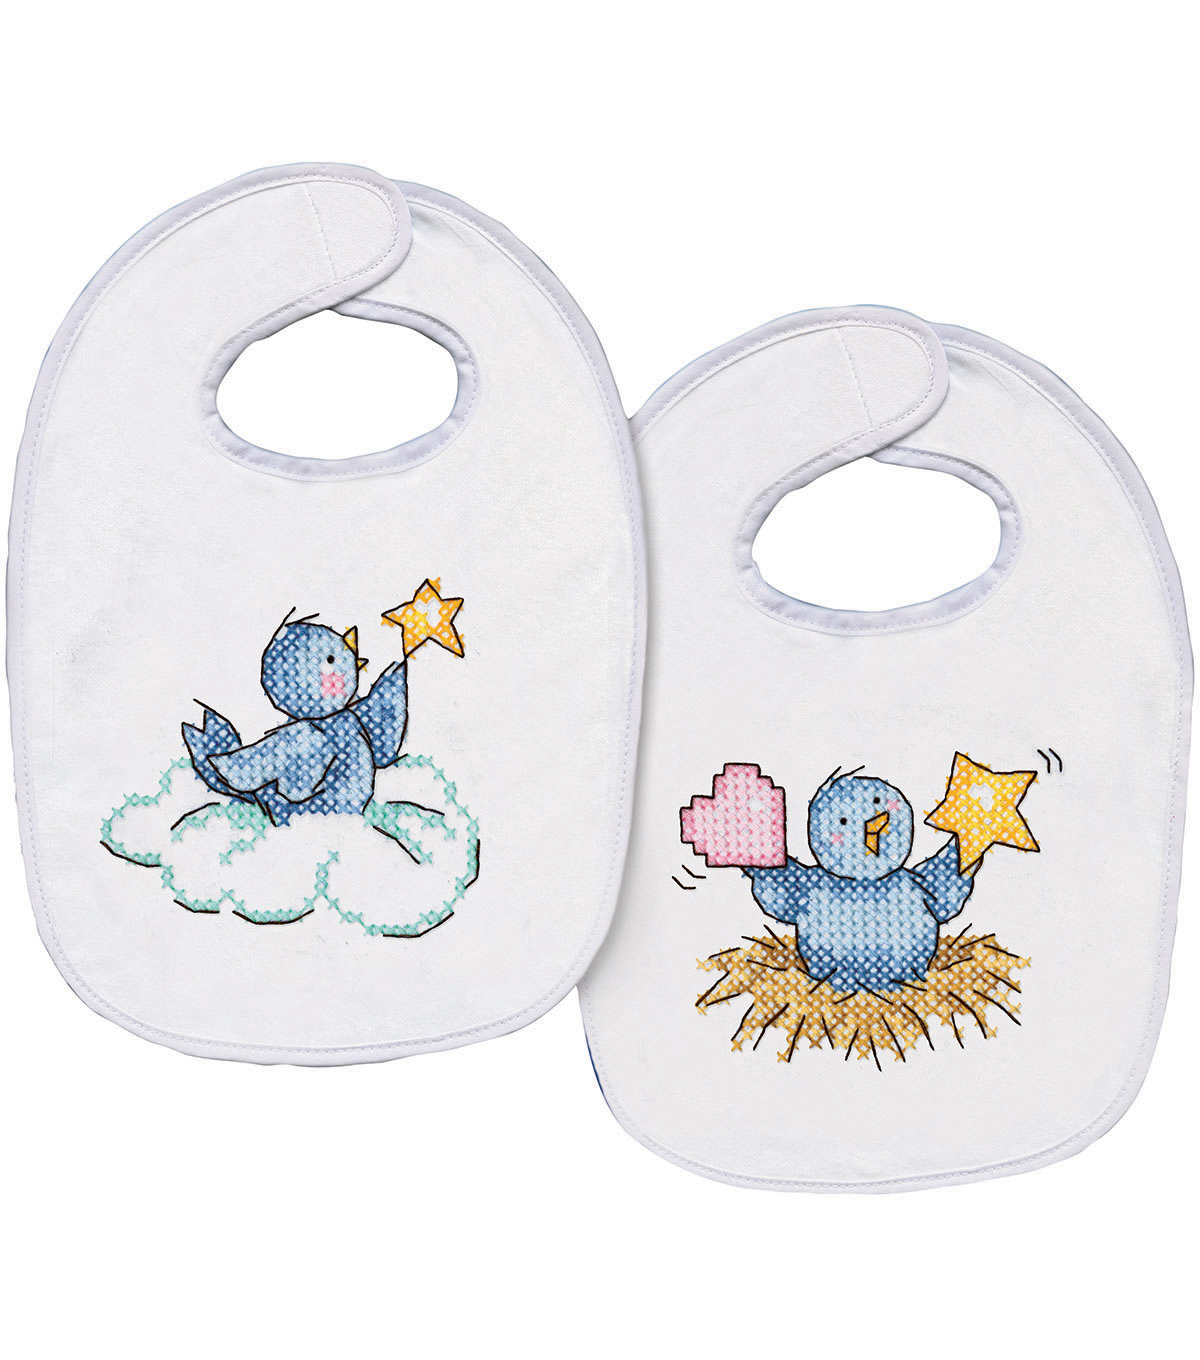 Tobin Balloon Ride stamped-cross-stitch Kit Bib Pair